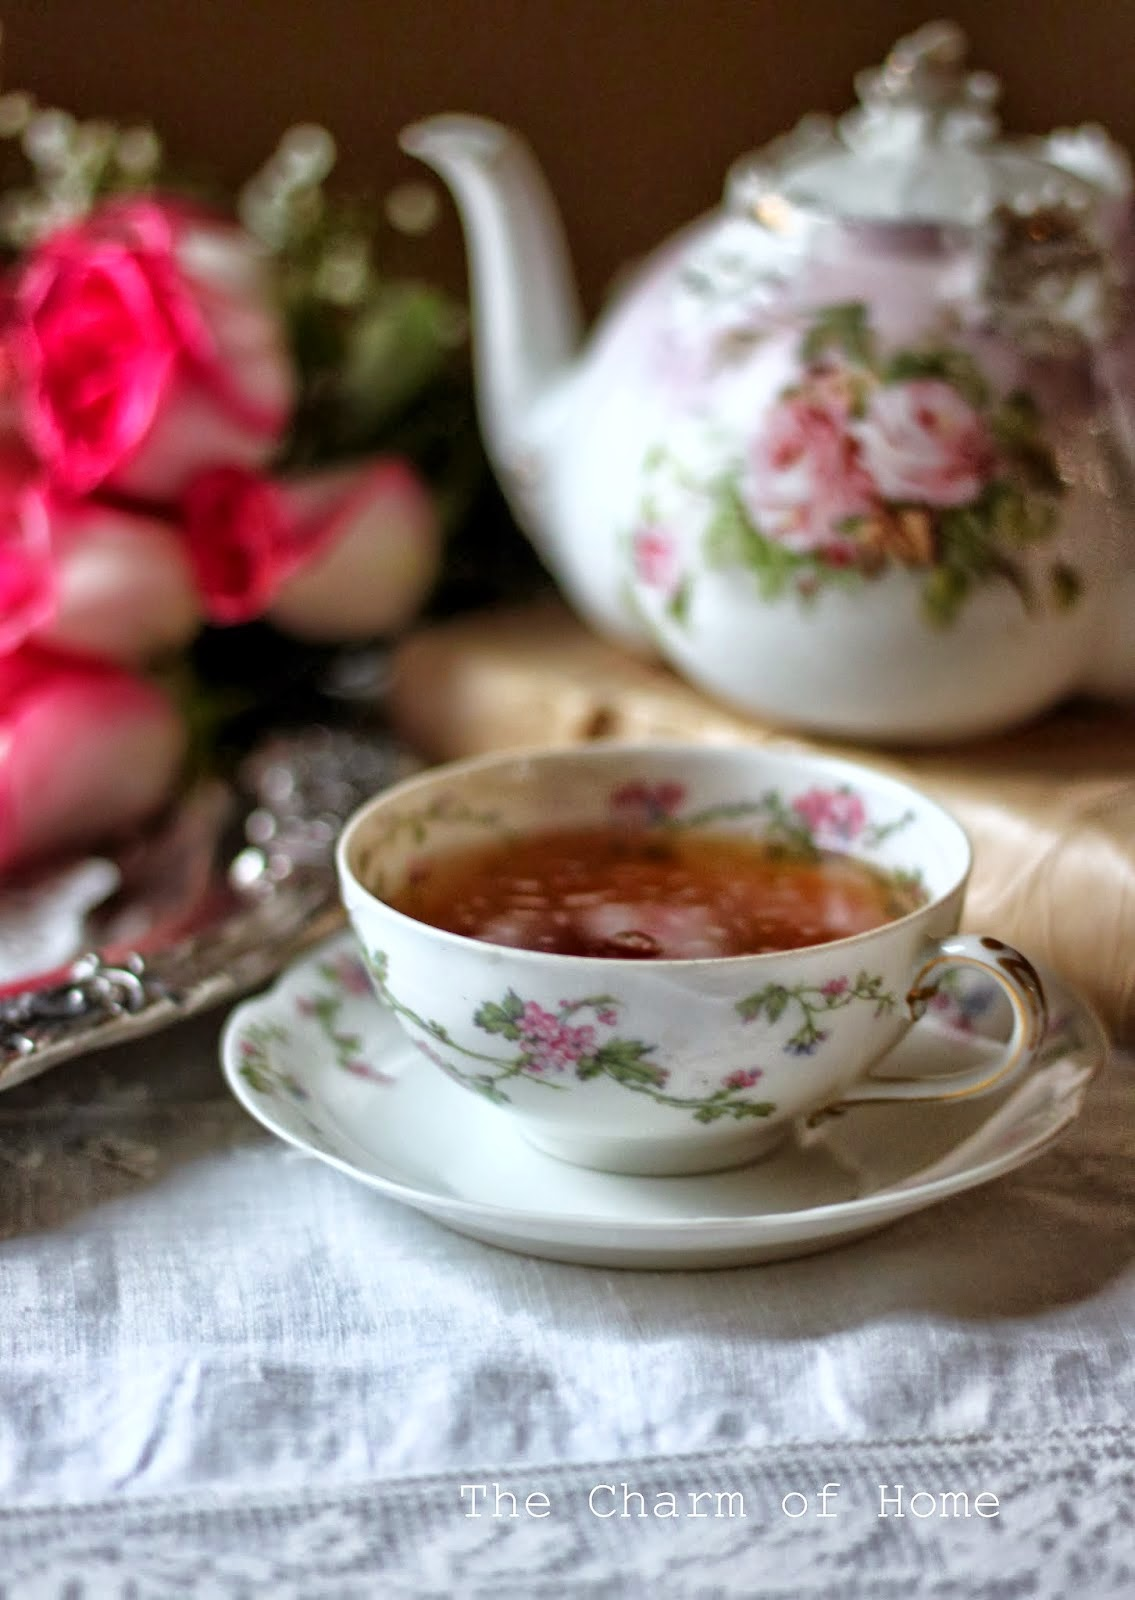 2014 Year End Tea Review: The Charm of Home